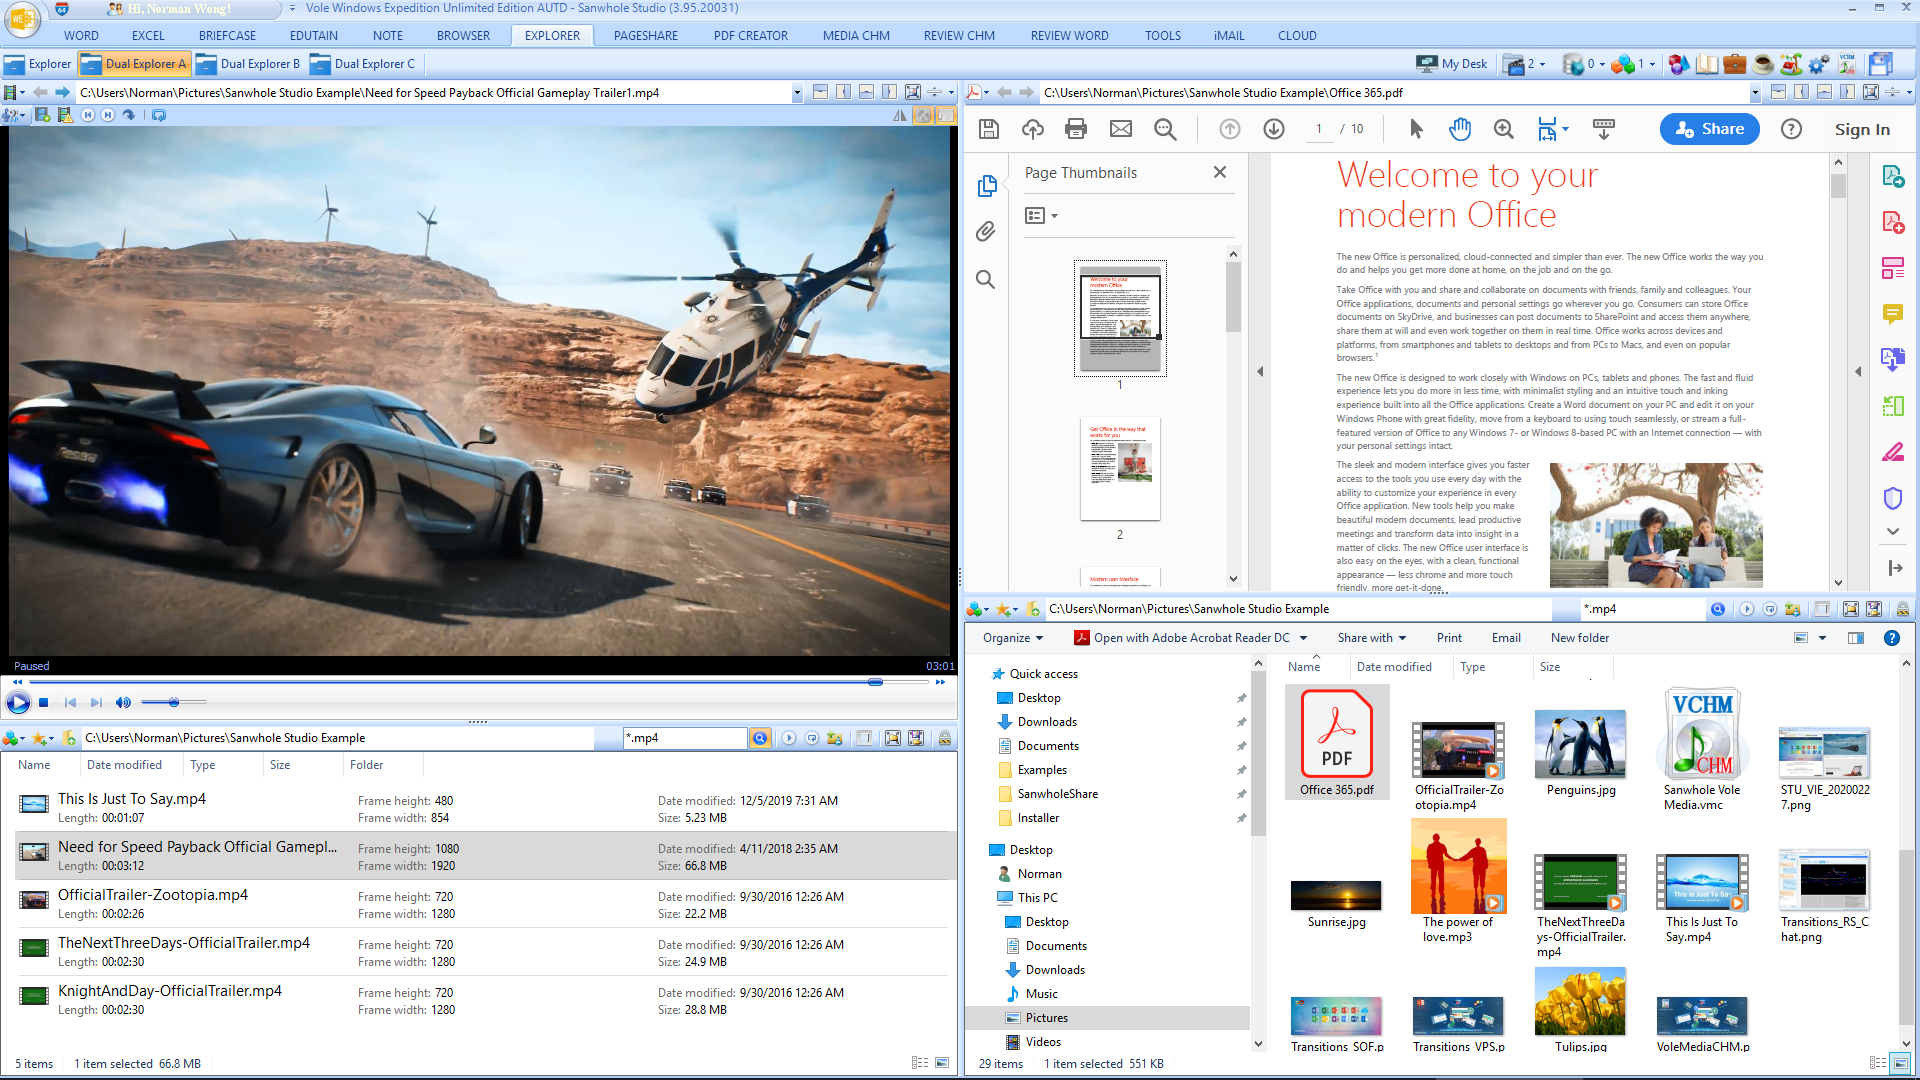 Vole Windows Expedition Ultimate Edition, Software Utilities, File Management Software Screenshot